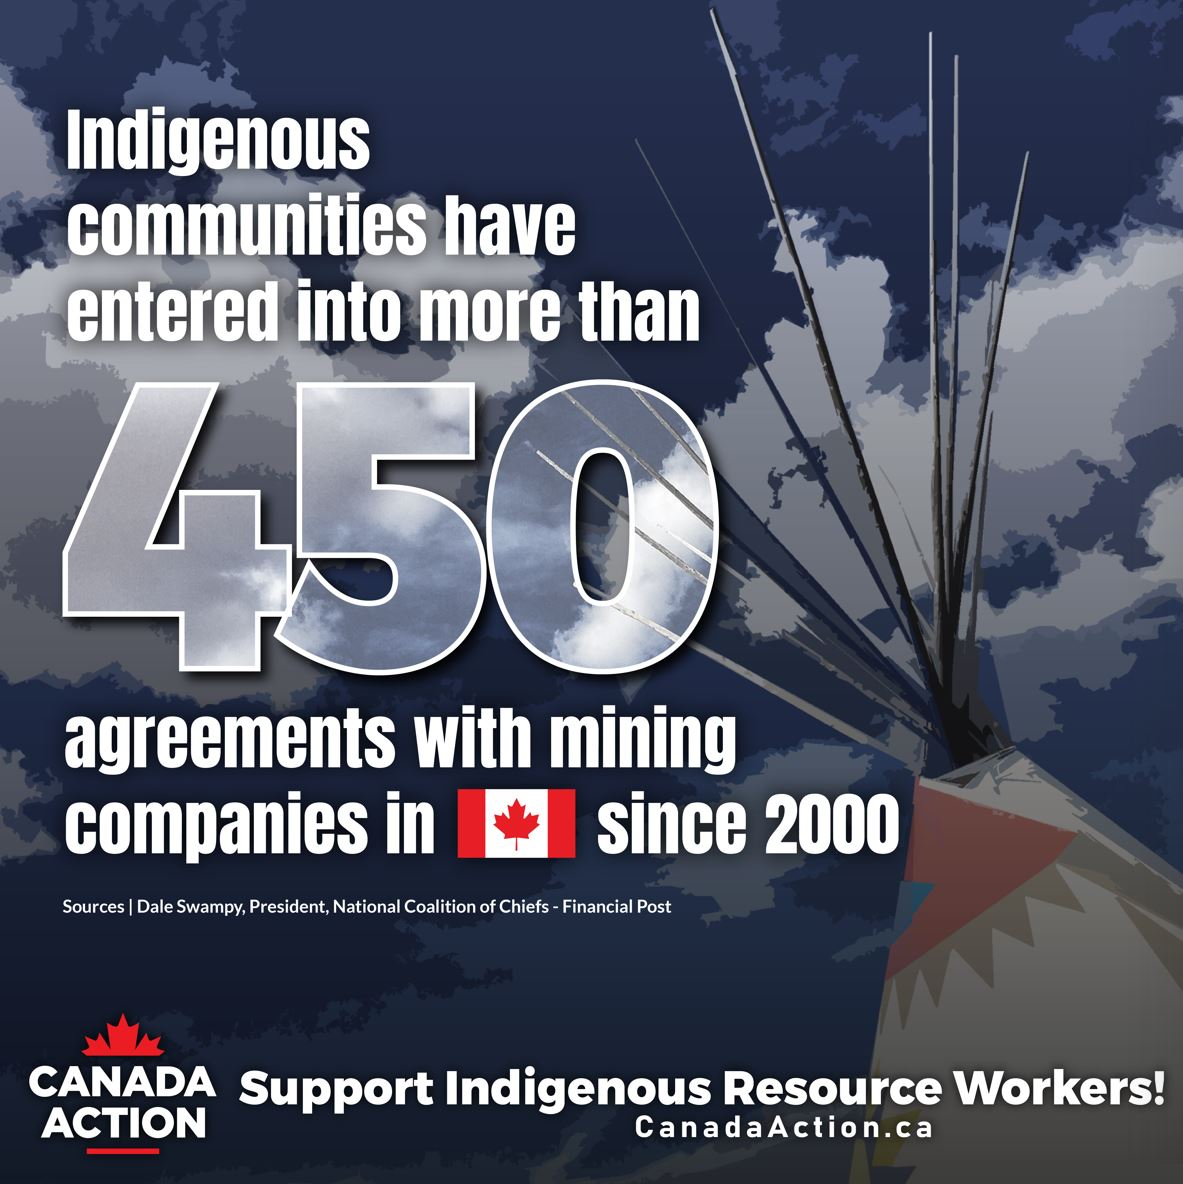 indigenous communities Canadian mining sector contracts since 2000